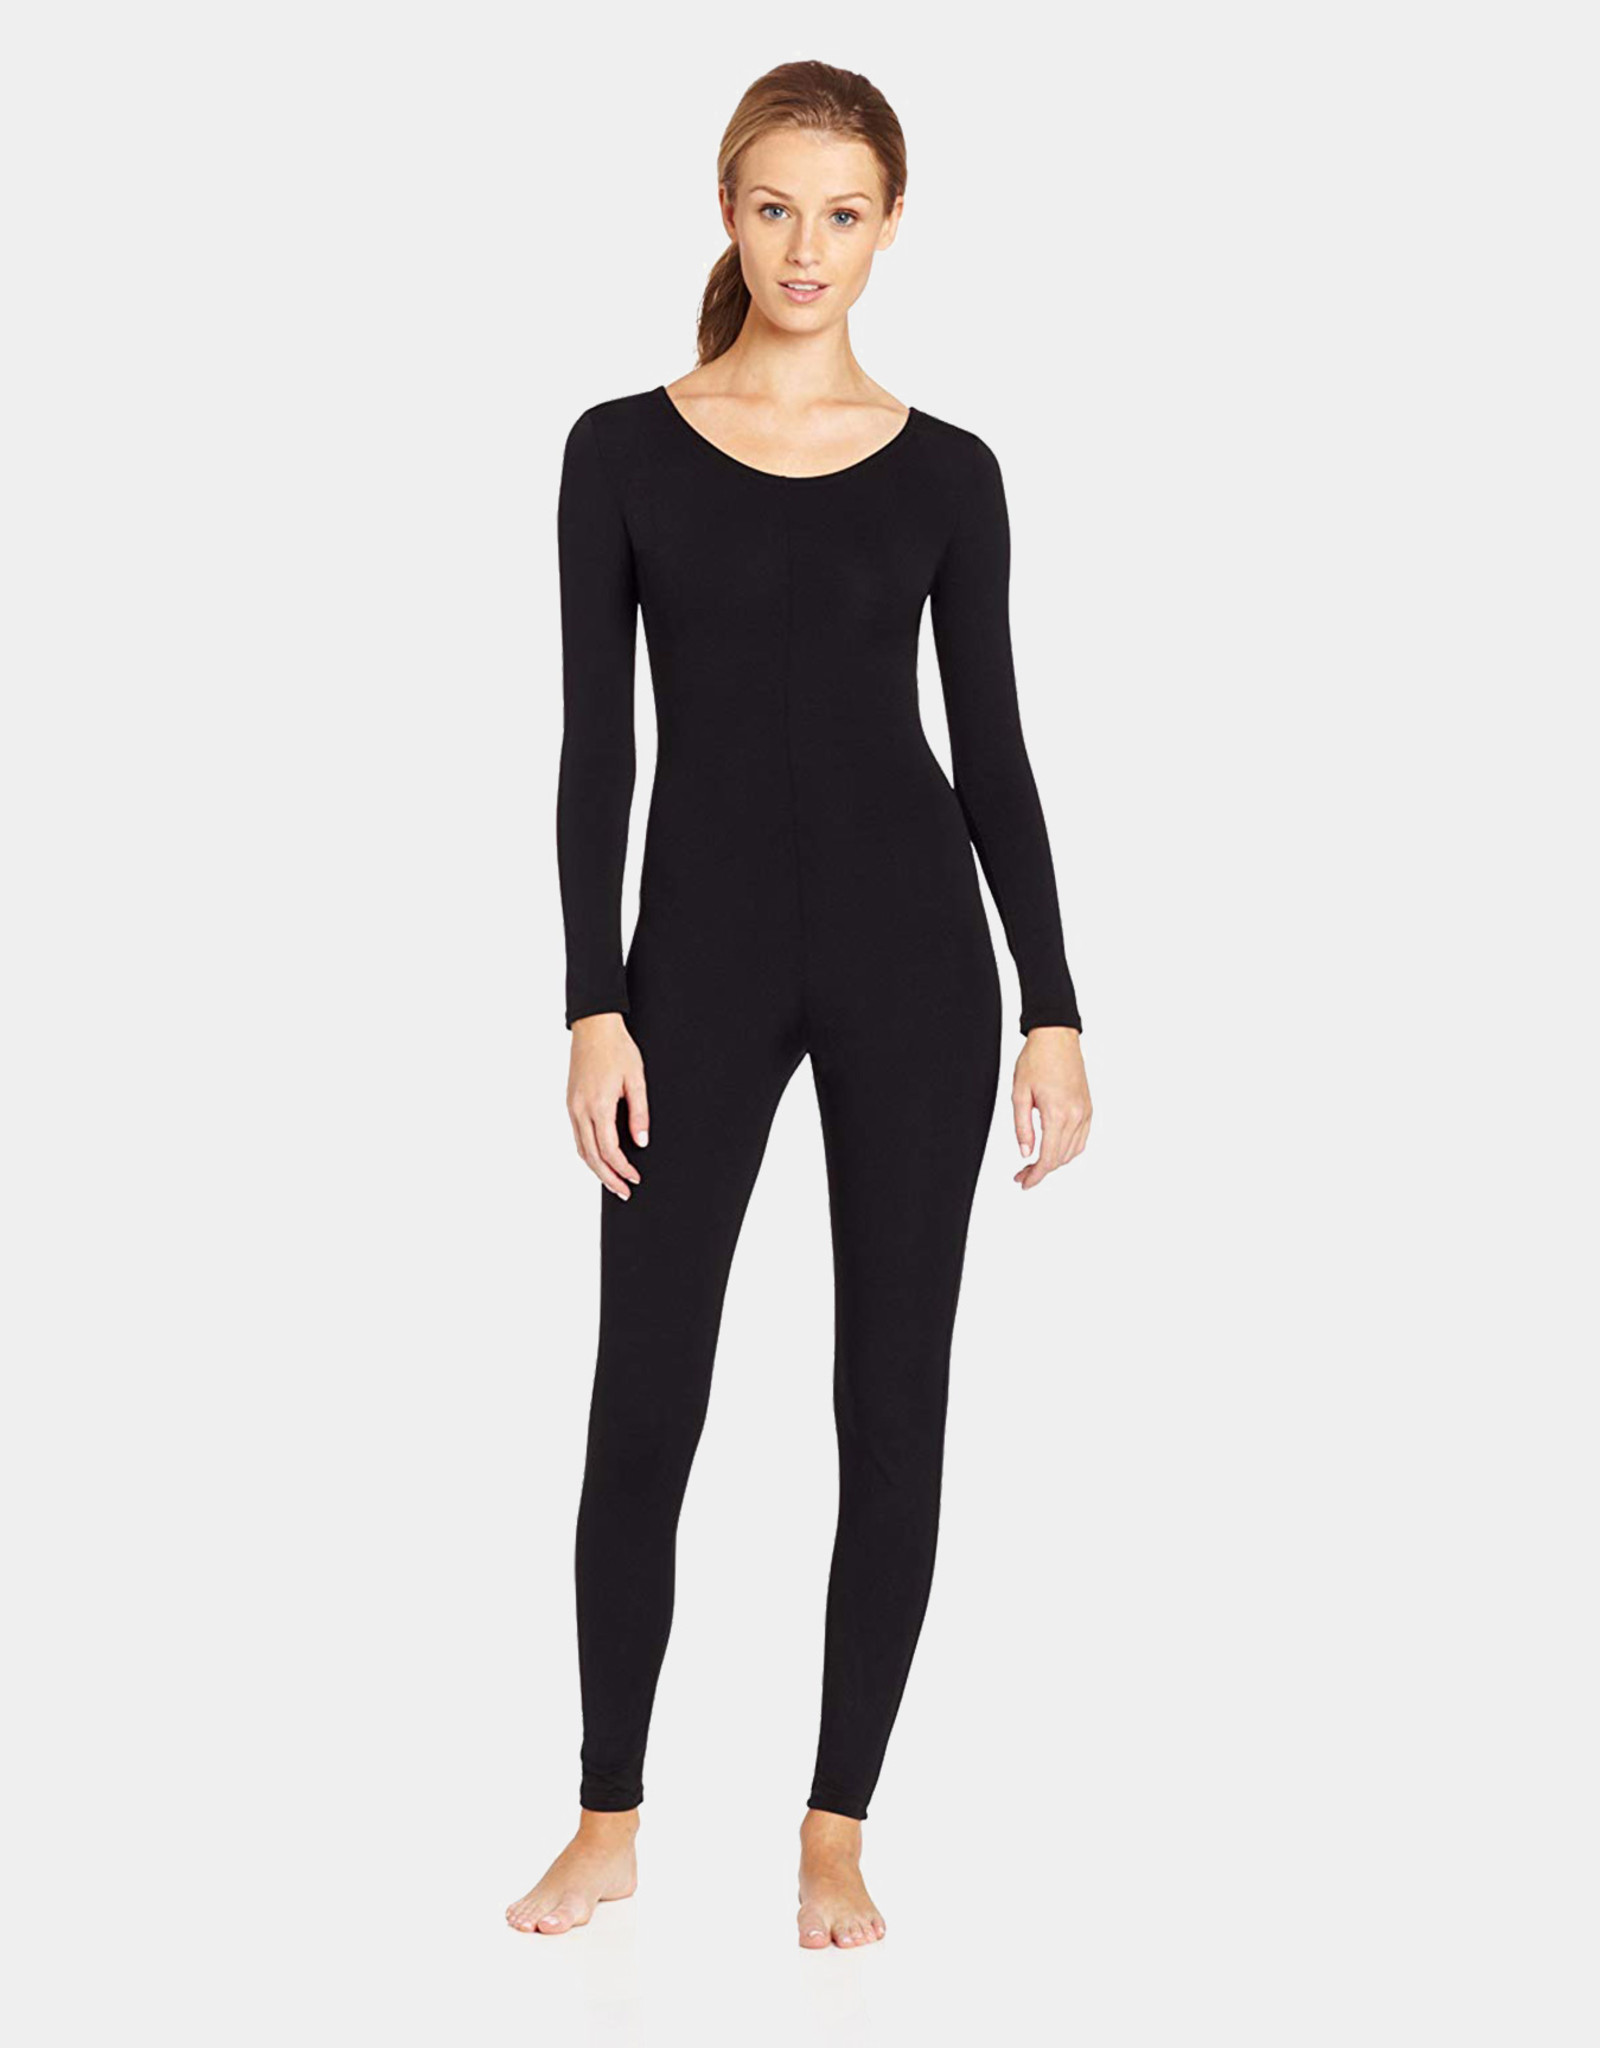 BODY WRAPPERS TOTAL STRETCH UNDERWRAPS LONG SLEEVE UNITARD (MT217)